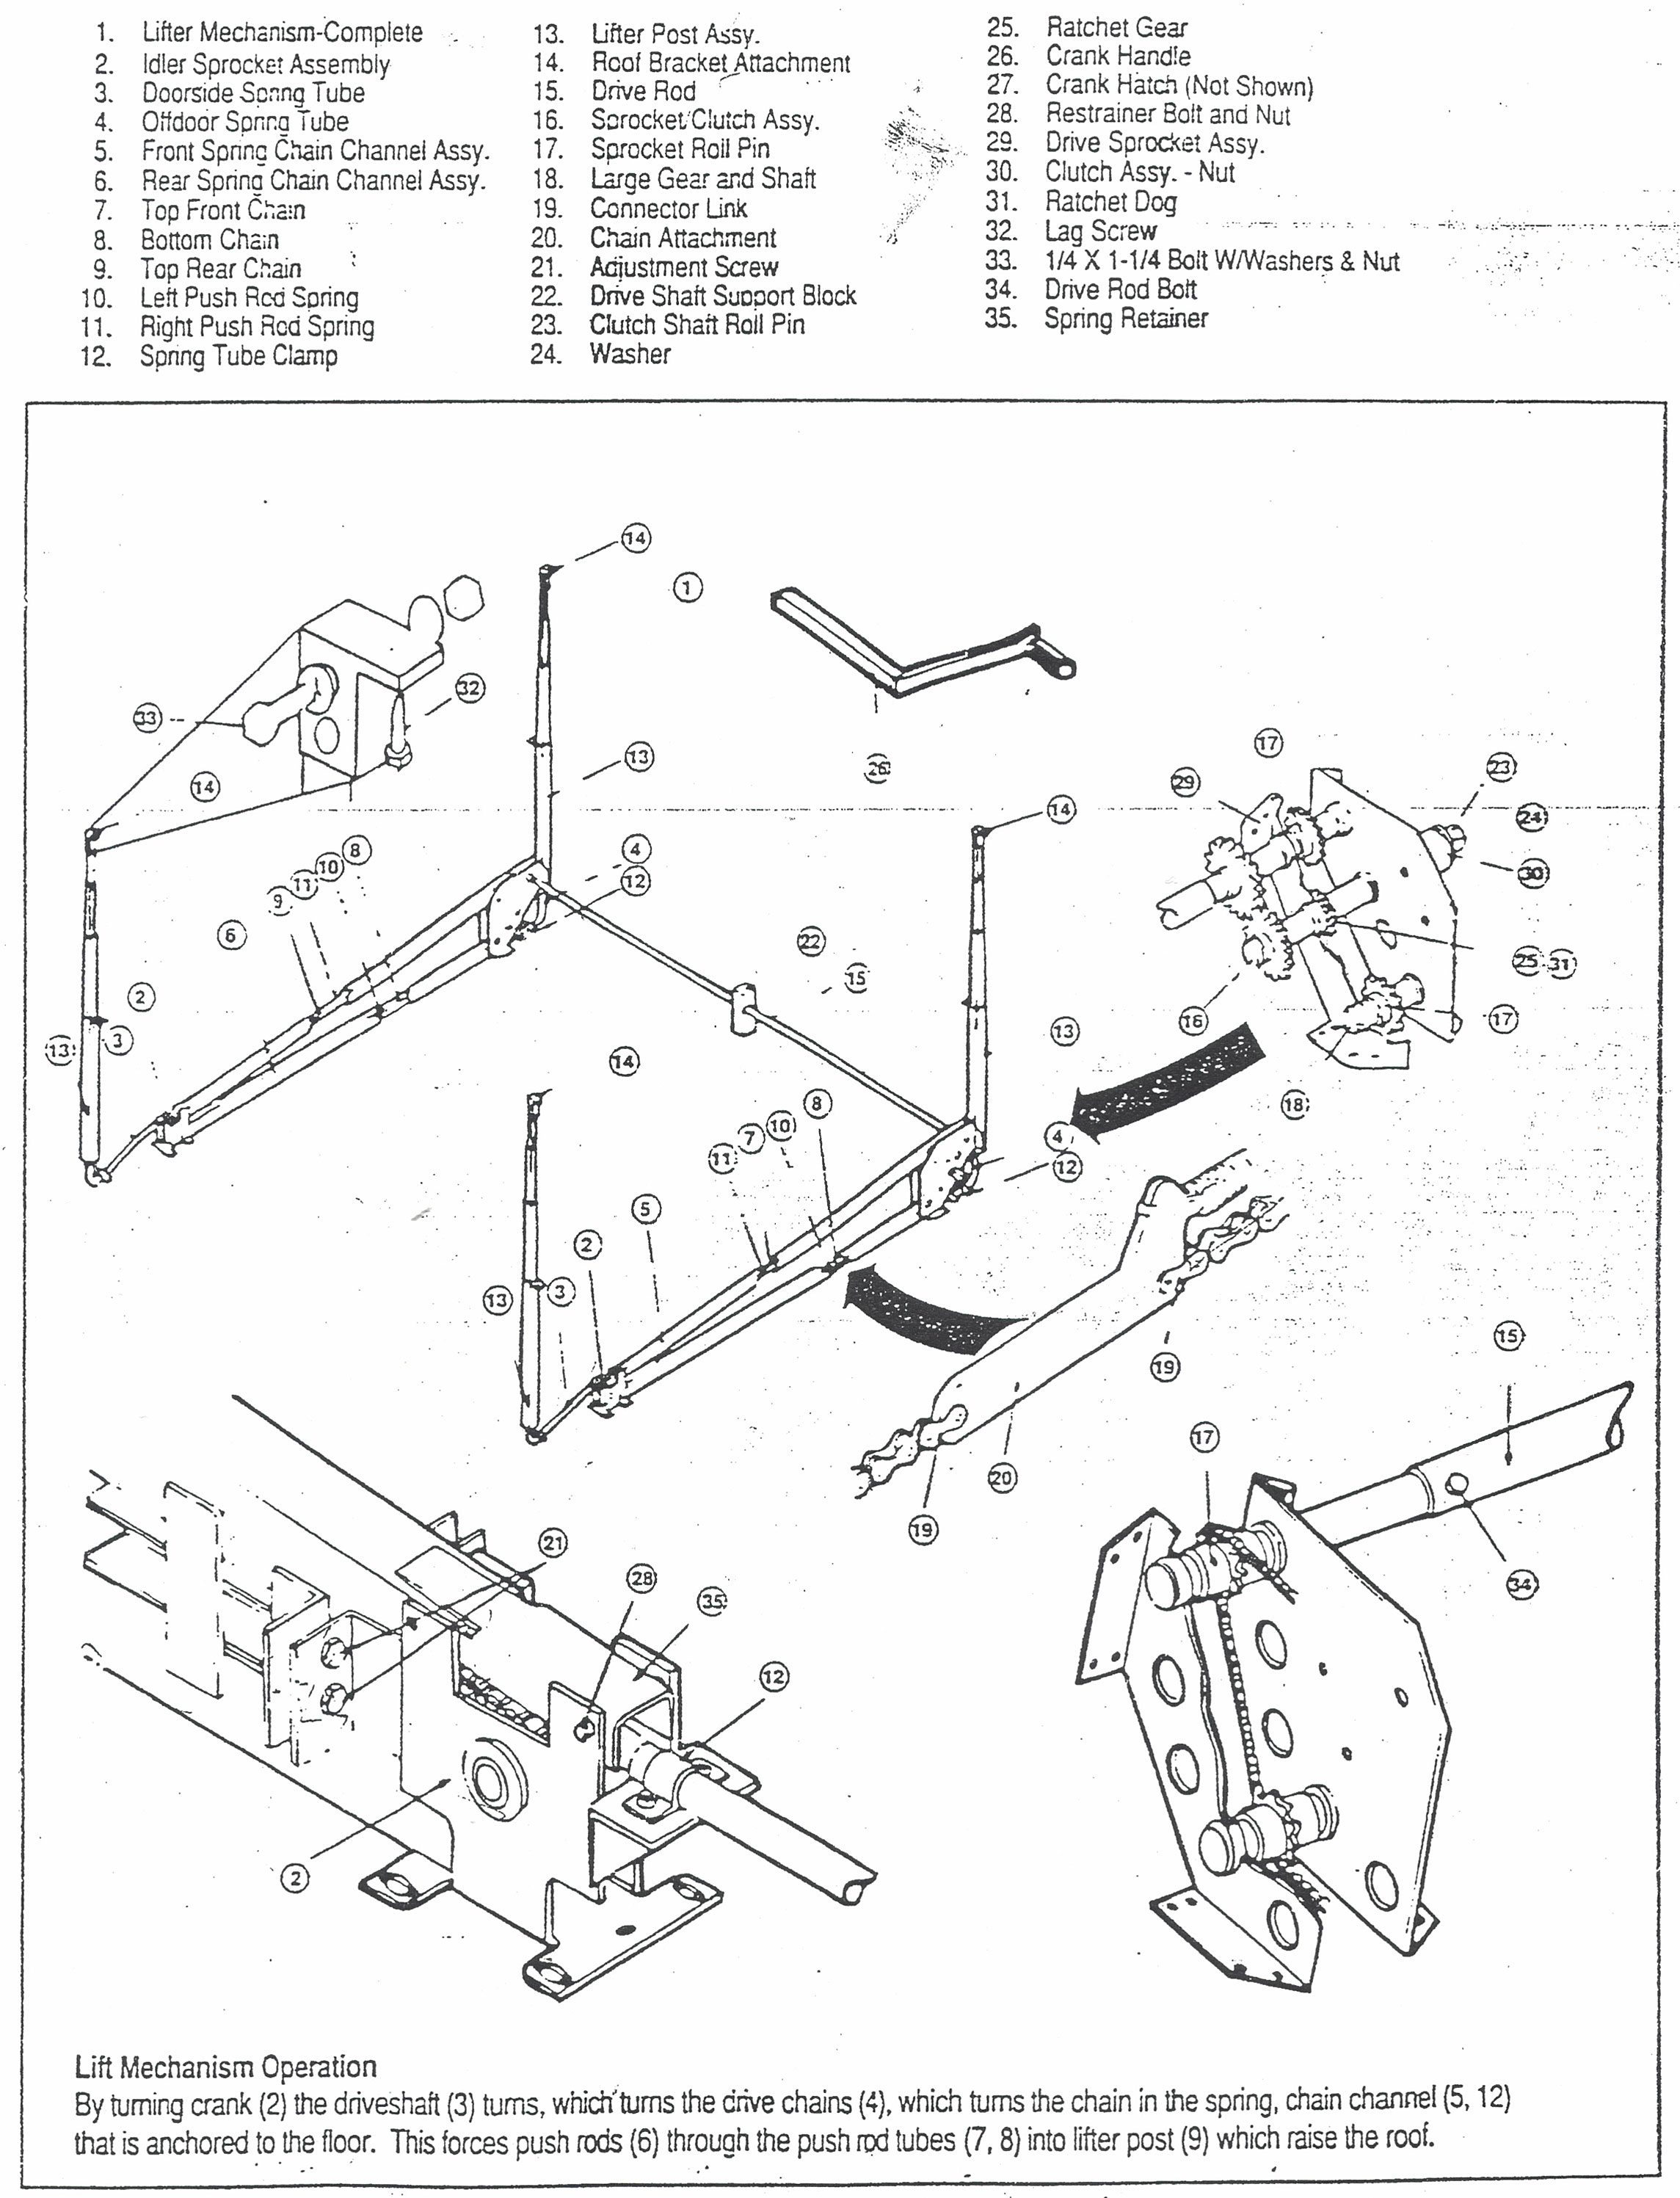 2005 viking pop up camper wiring diagram